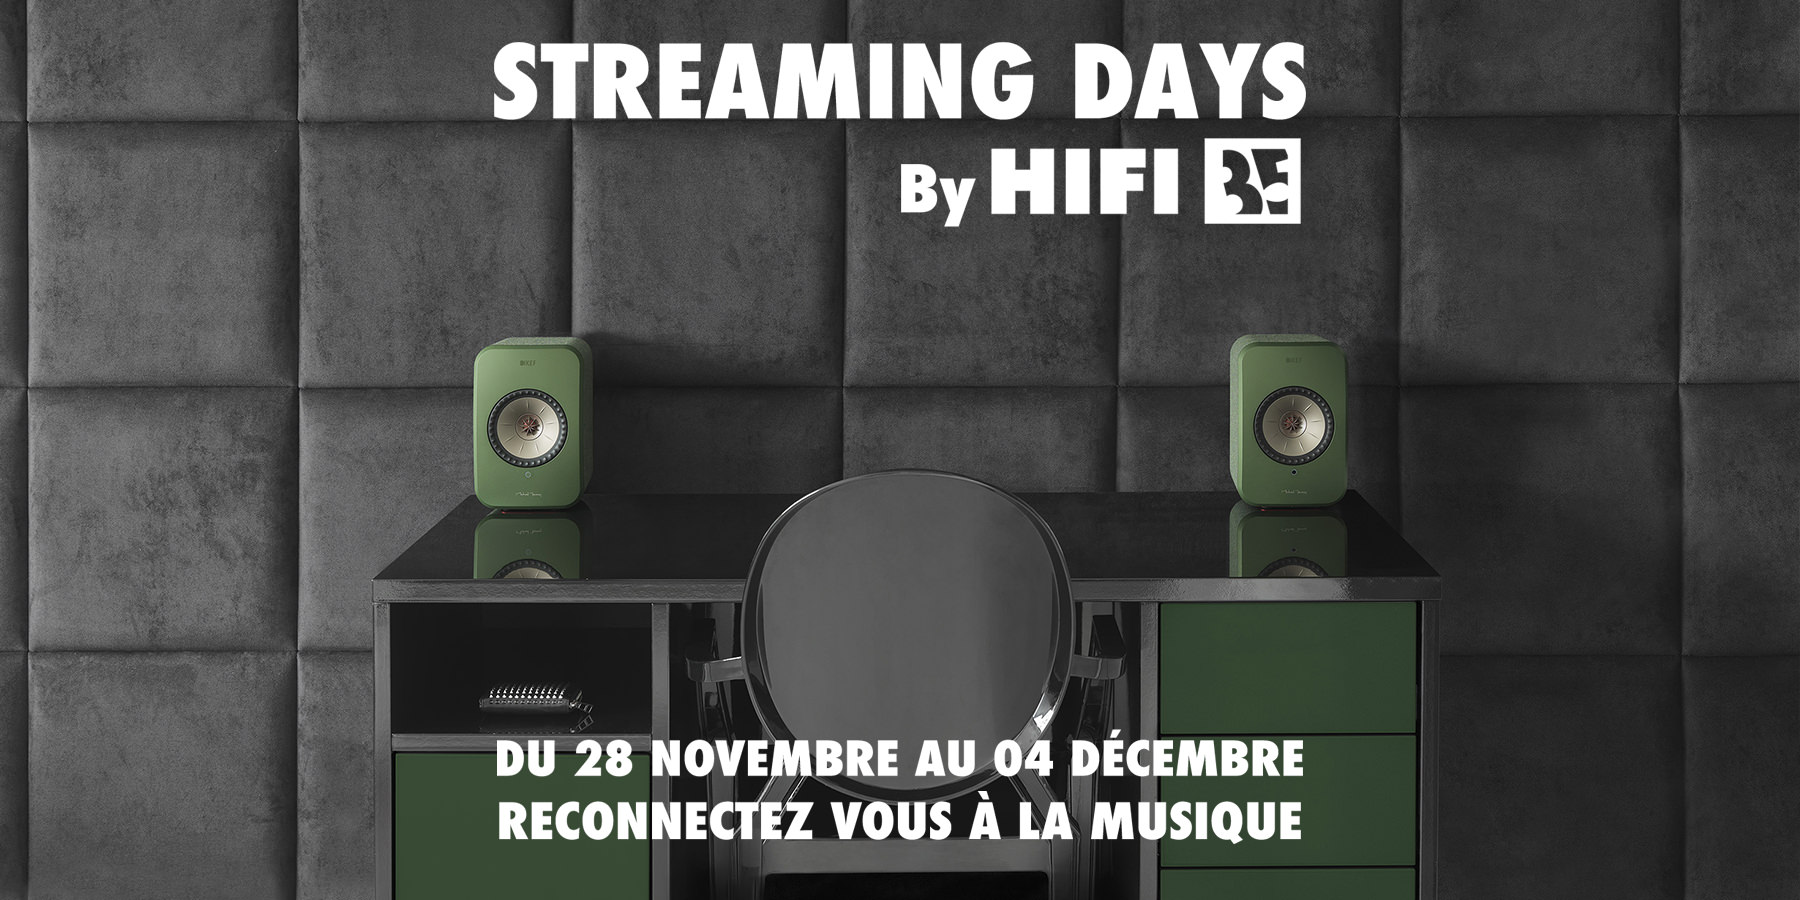 Streaming days by HIFI35